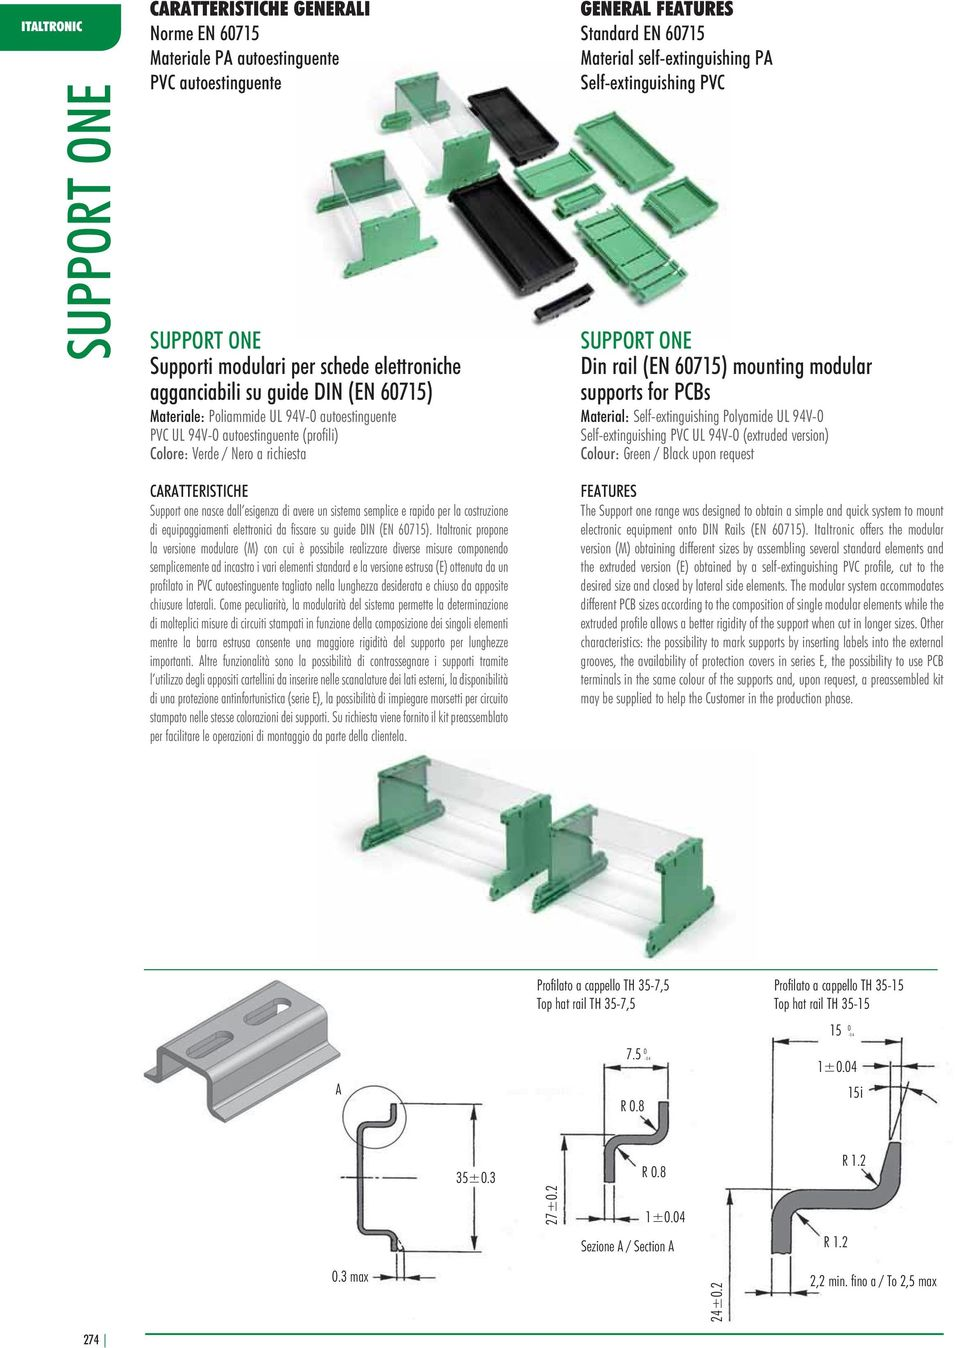 mounting modular supports for PCBs Material: Self-extinguishing Polyamide UL 94V-0 Self-extinguishing PVC UL 94V-0 (extruded version) Colour: Green / Black upon request CARATTERISTICHE Support one